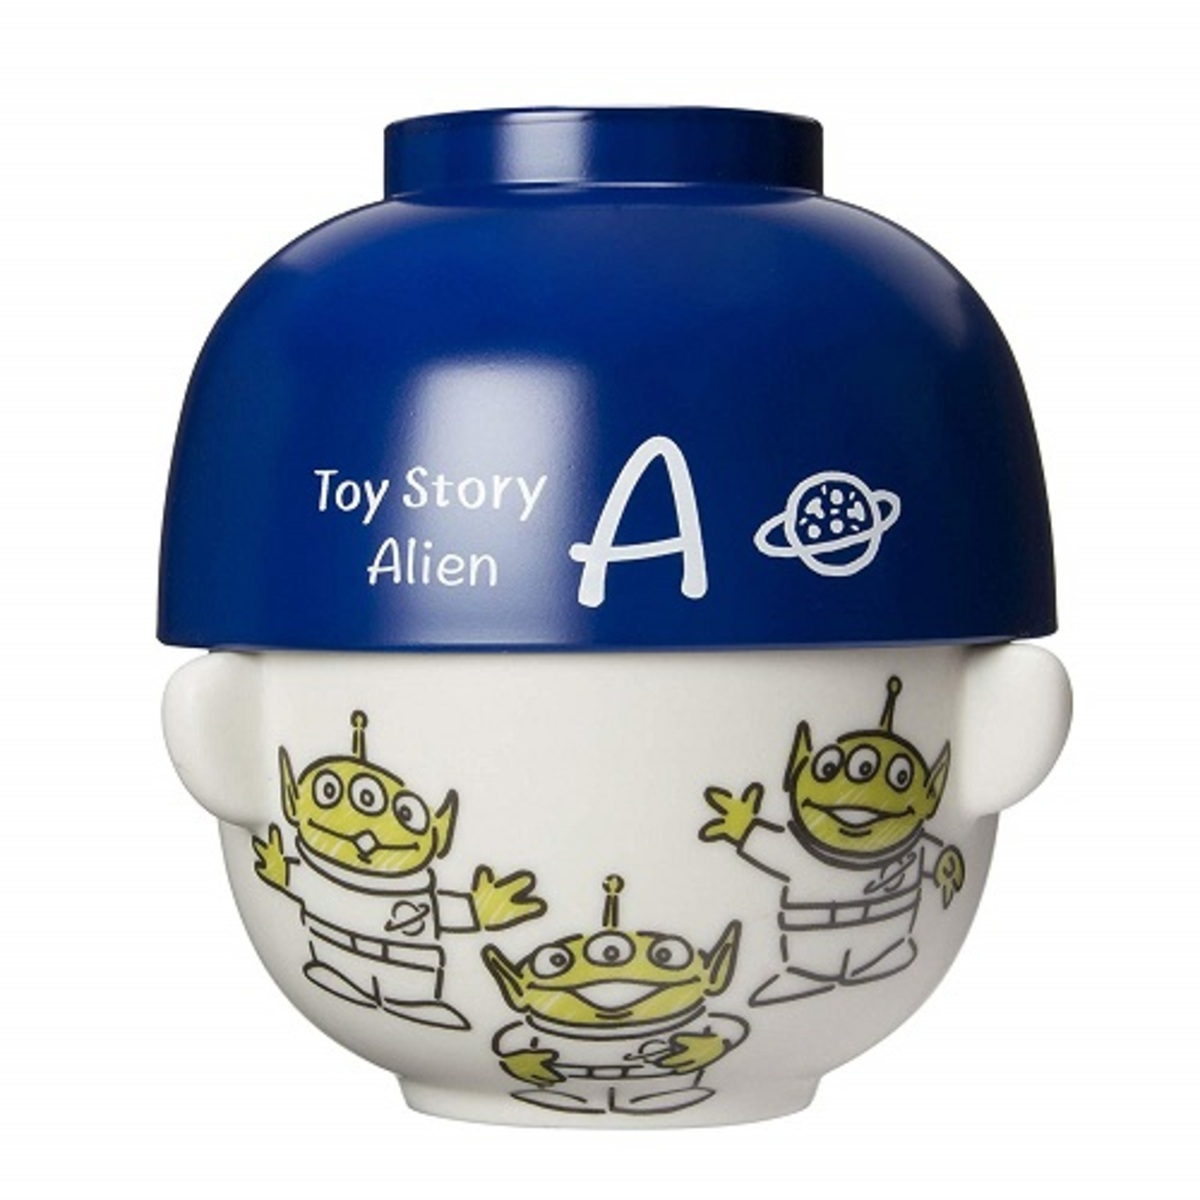 Sunart - Toy Story - Alien Soup Bowl Cup